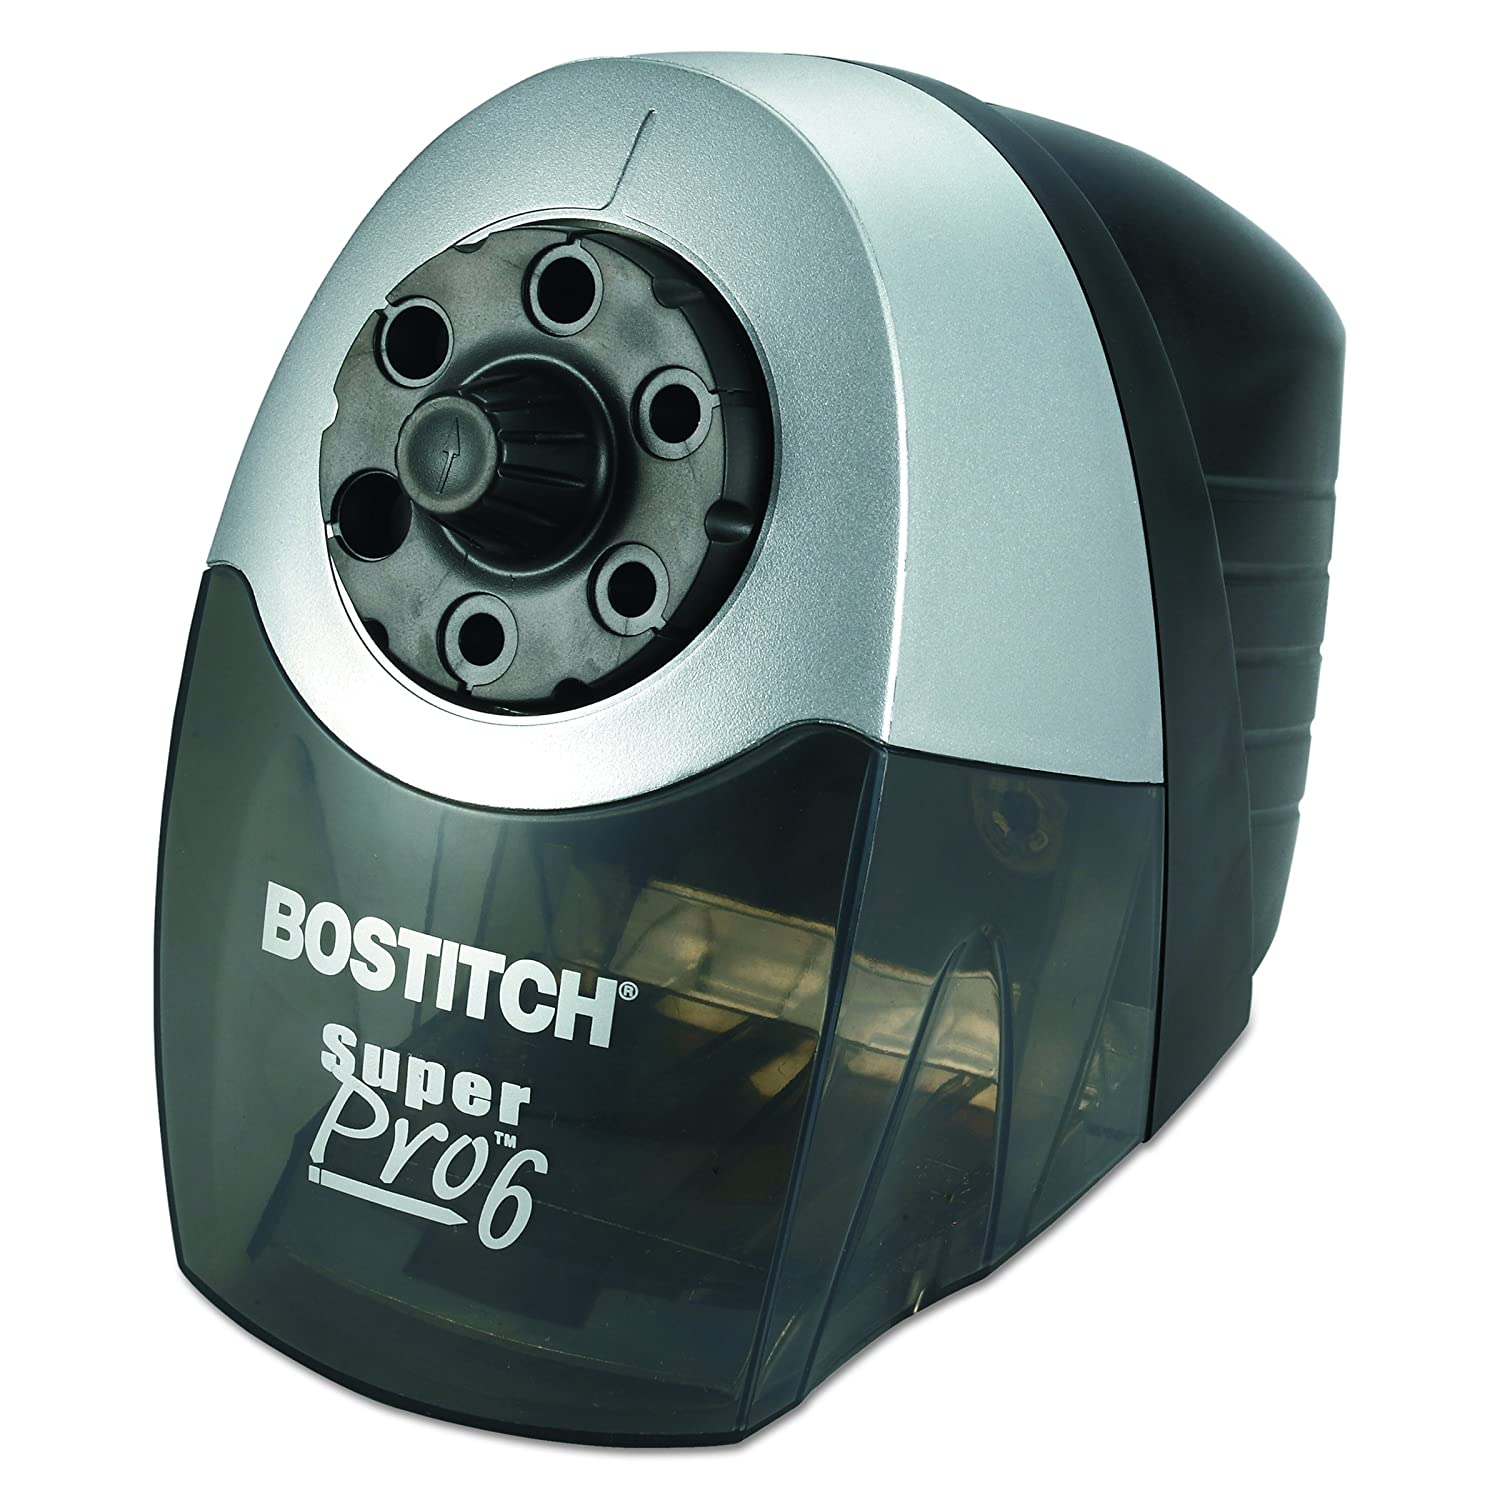 Bostitch SuperPro 6 Extra Heavy Duty Classroom Commercial Electric Pencil Sharpener, 6-Holes, Black/Gray (EPS12HC) Bostitch Office